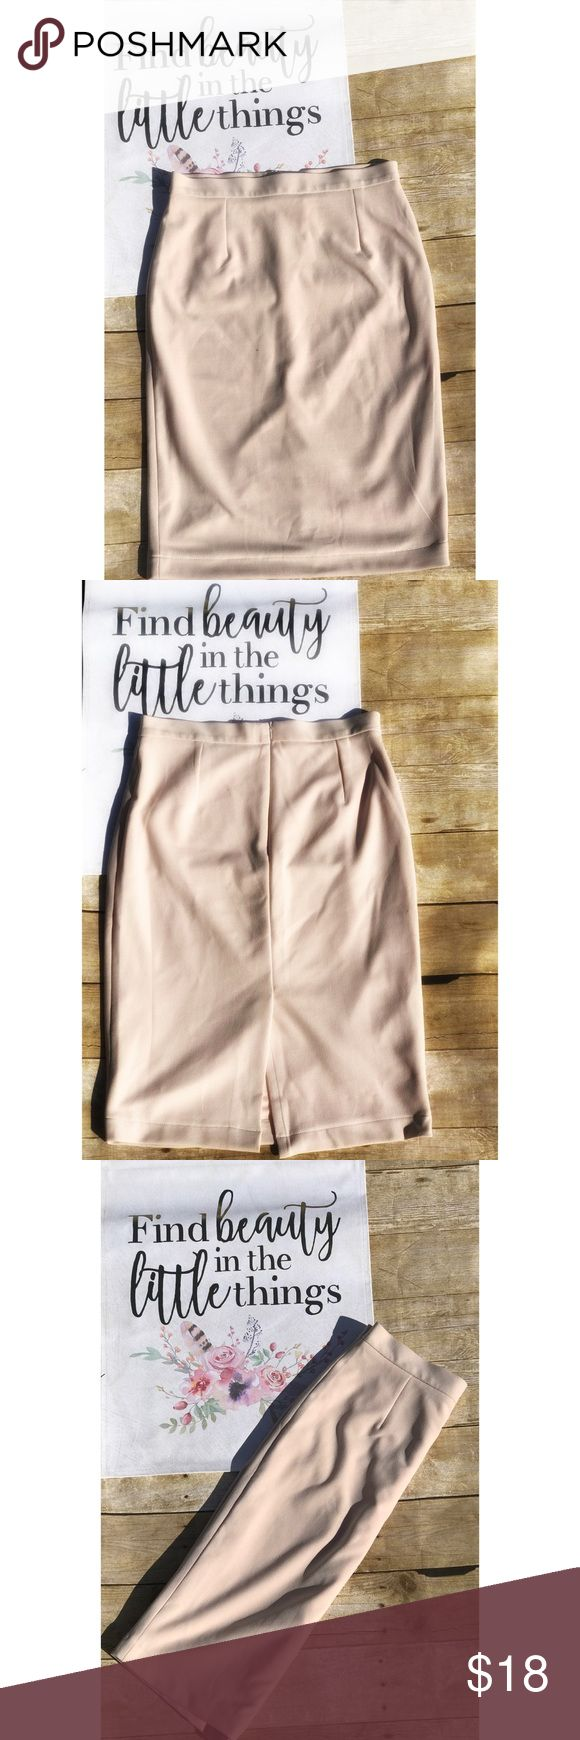 """Lulu's blush pencil skirt size XL Add some chic, sophisticated vibes to your wardrobe with this Pencil Skirt! Medium-weight stretch knit shapes this figure-flaunting skirt with a high, fitted, elasticized waist and midi-length hem. Waist is about 14"""" and lenght is about 23"""" Skirts Pencil"""